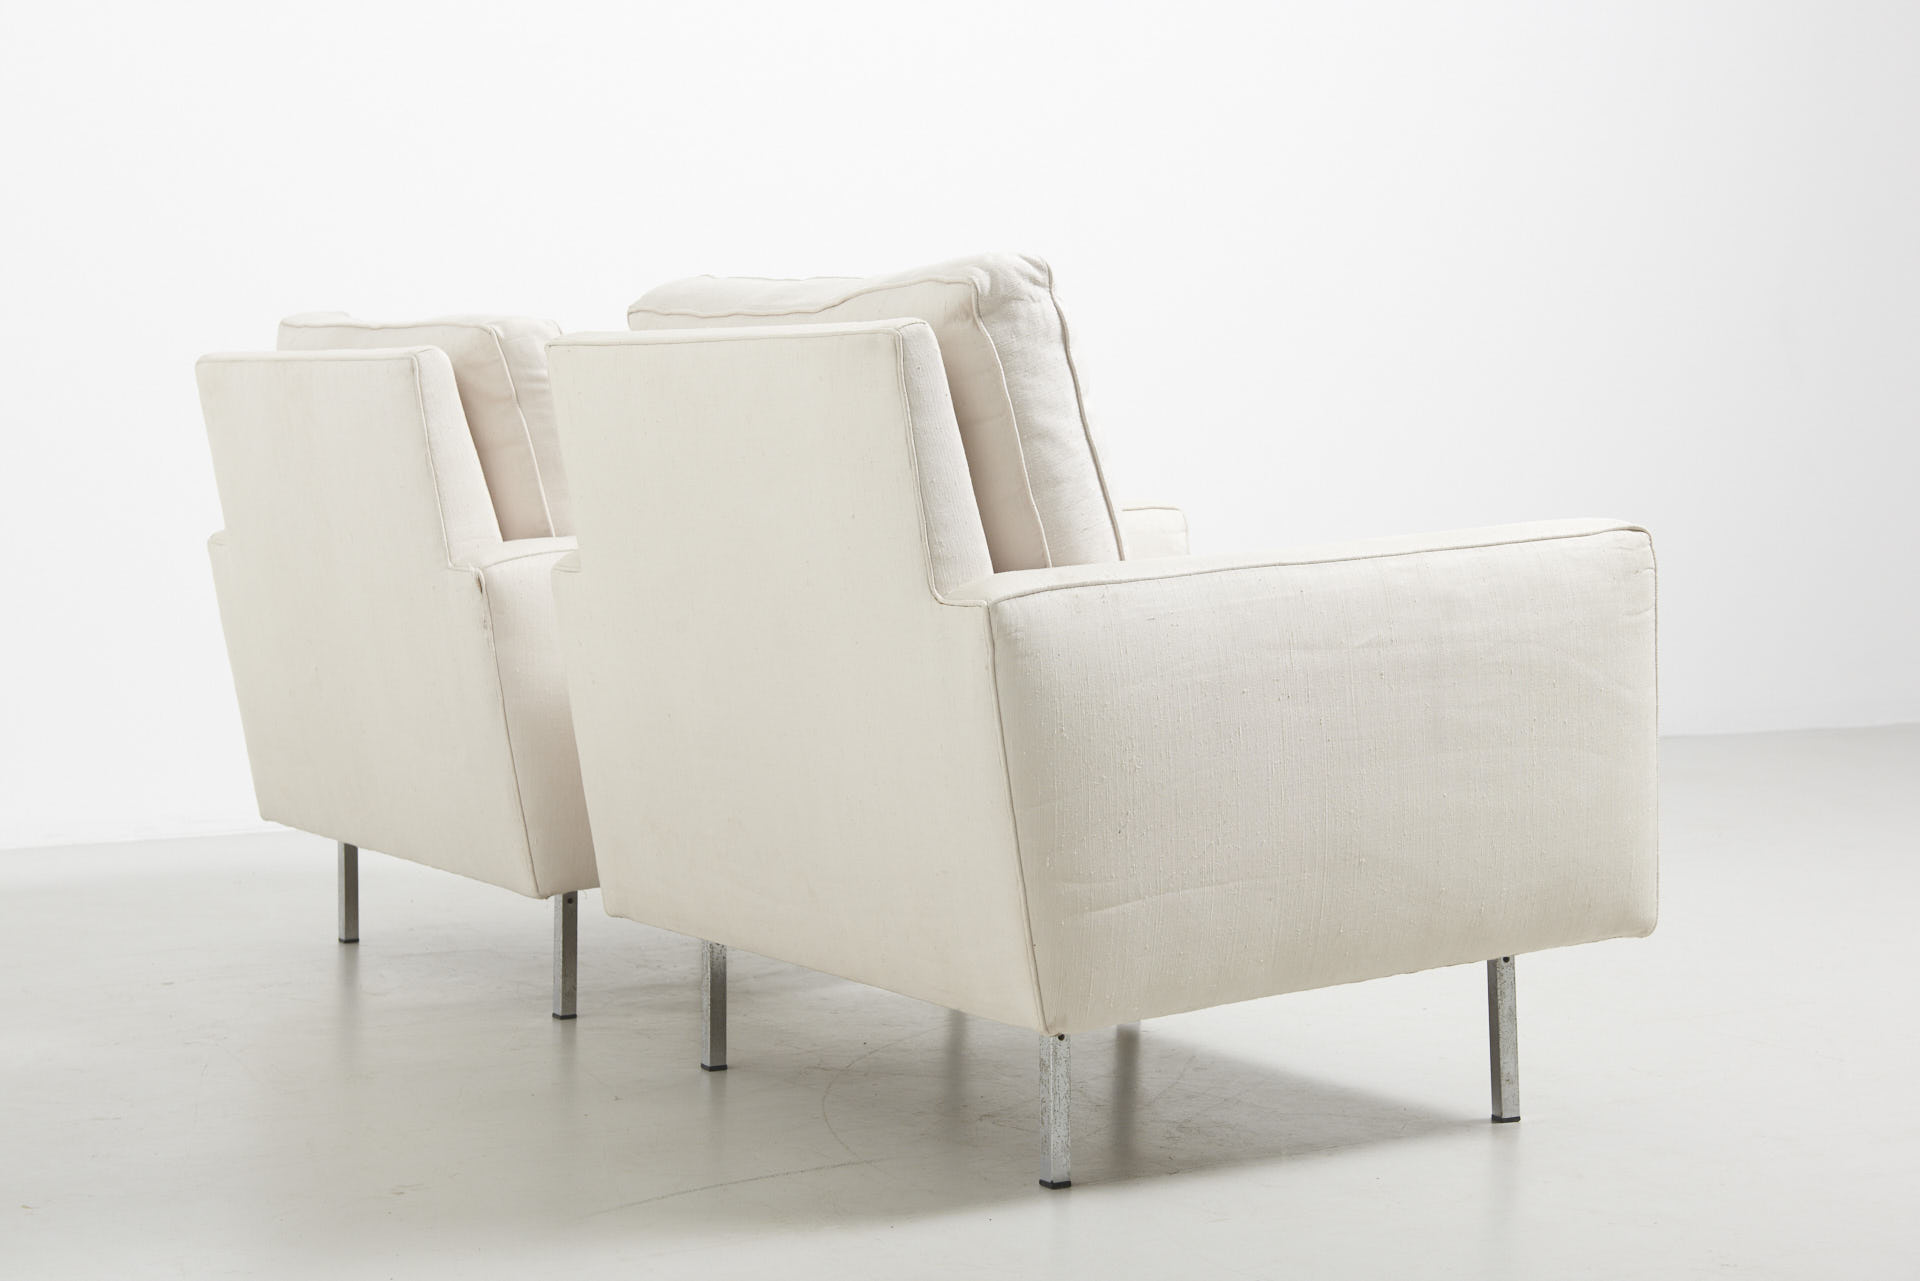 modestfurniture-vintage-2259-pair-easy-chairs-florence-knoll04